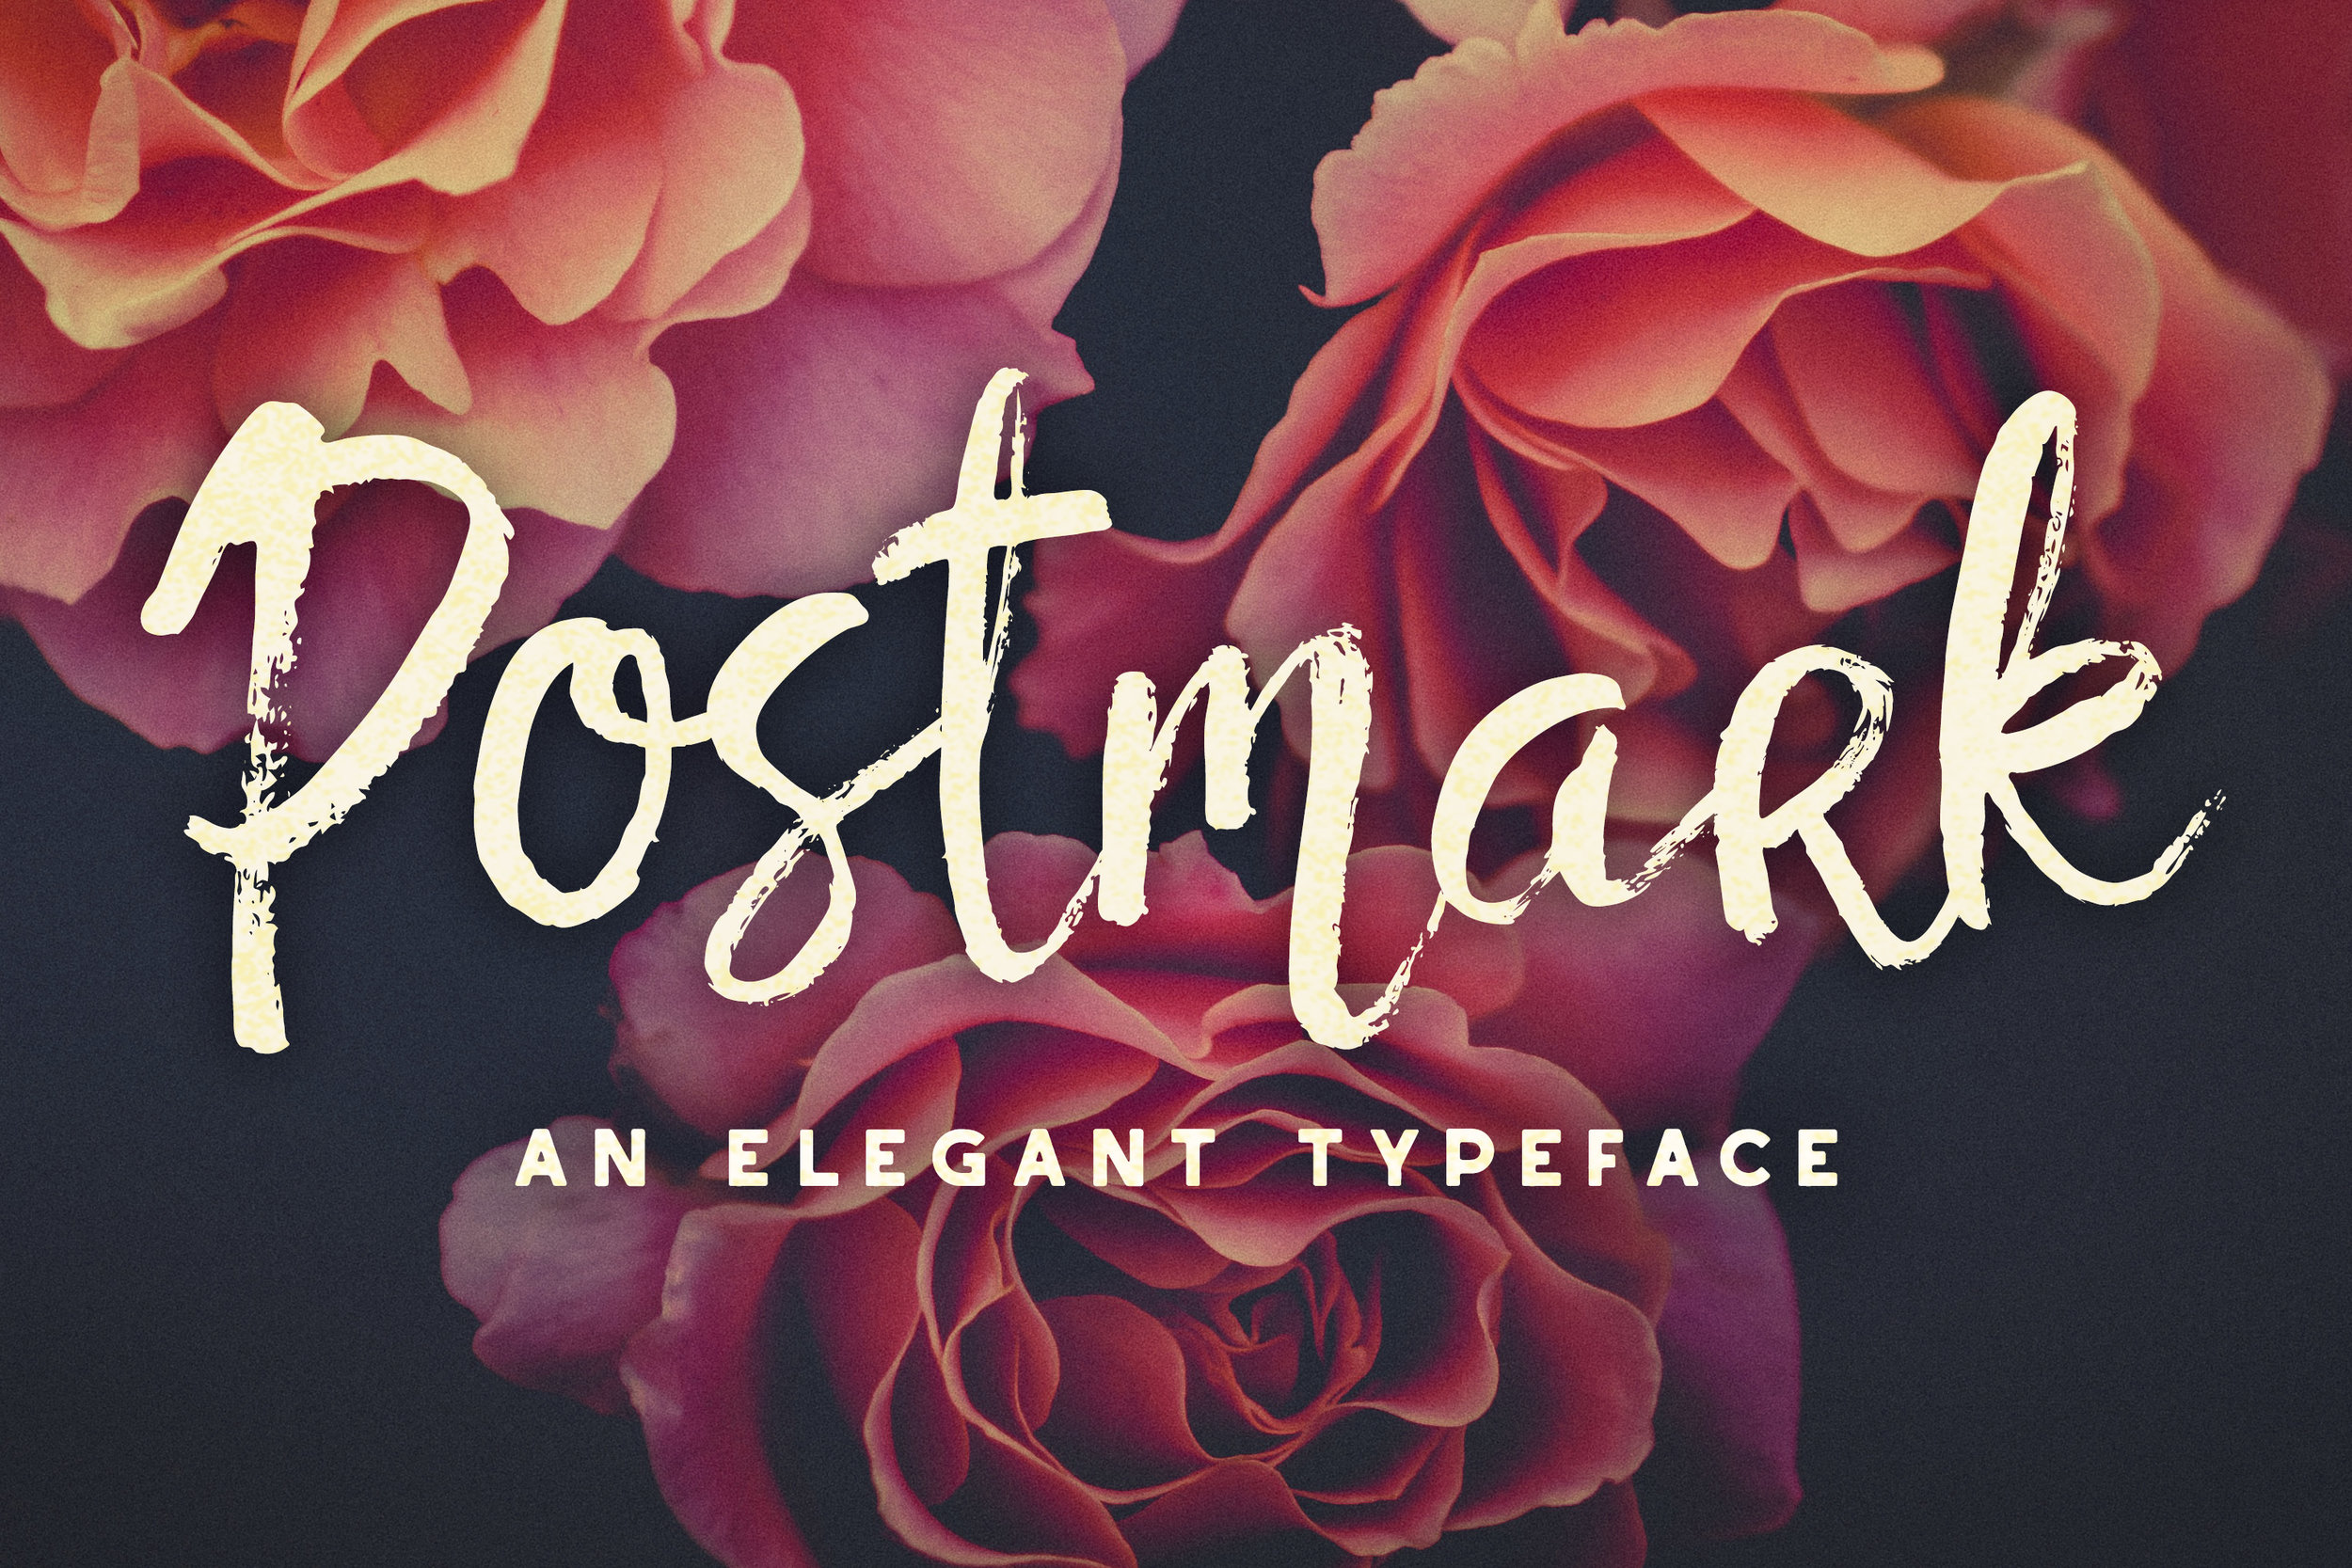 Postmark Font - Available on Creative Market